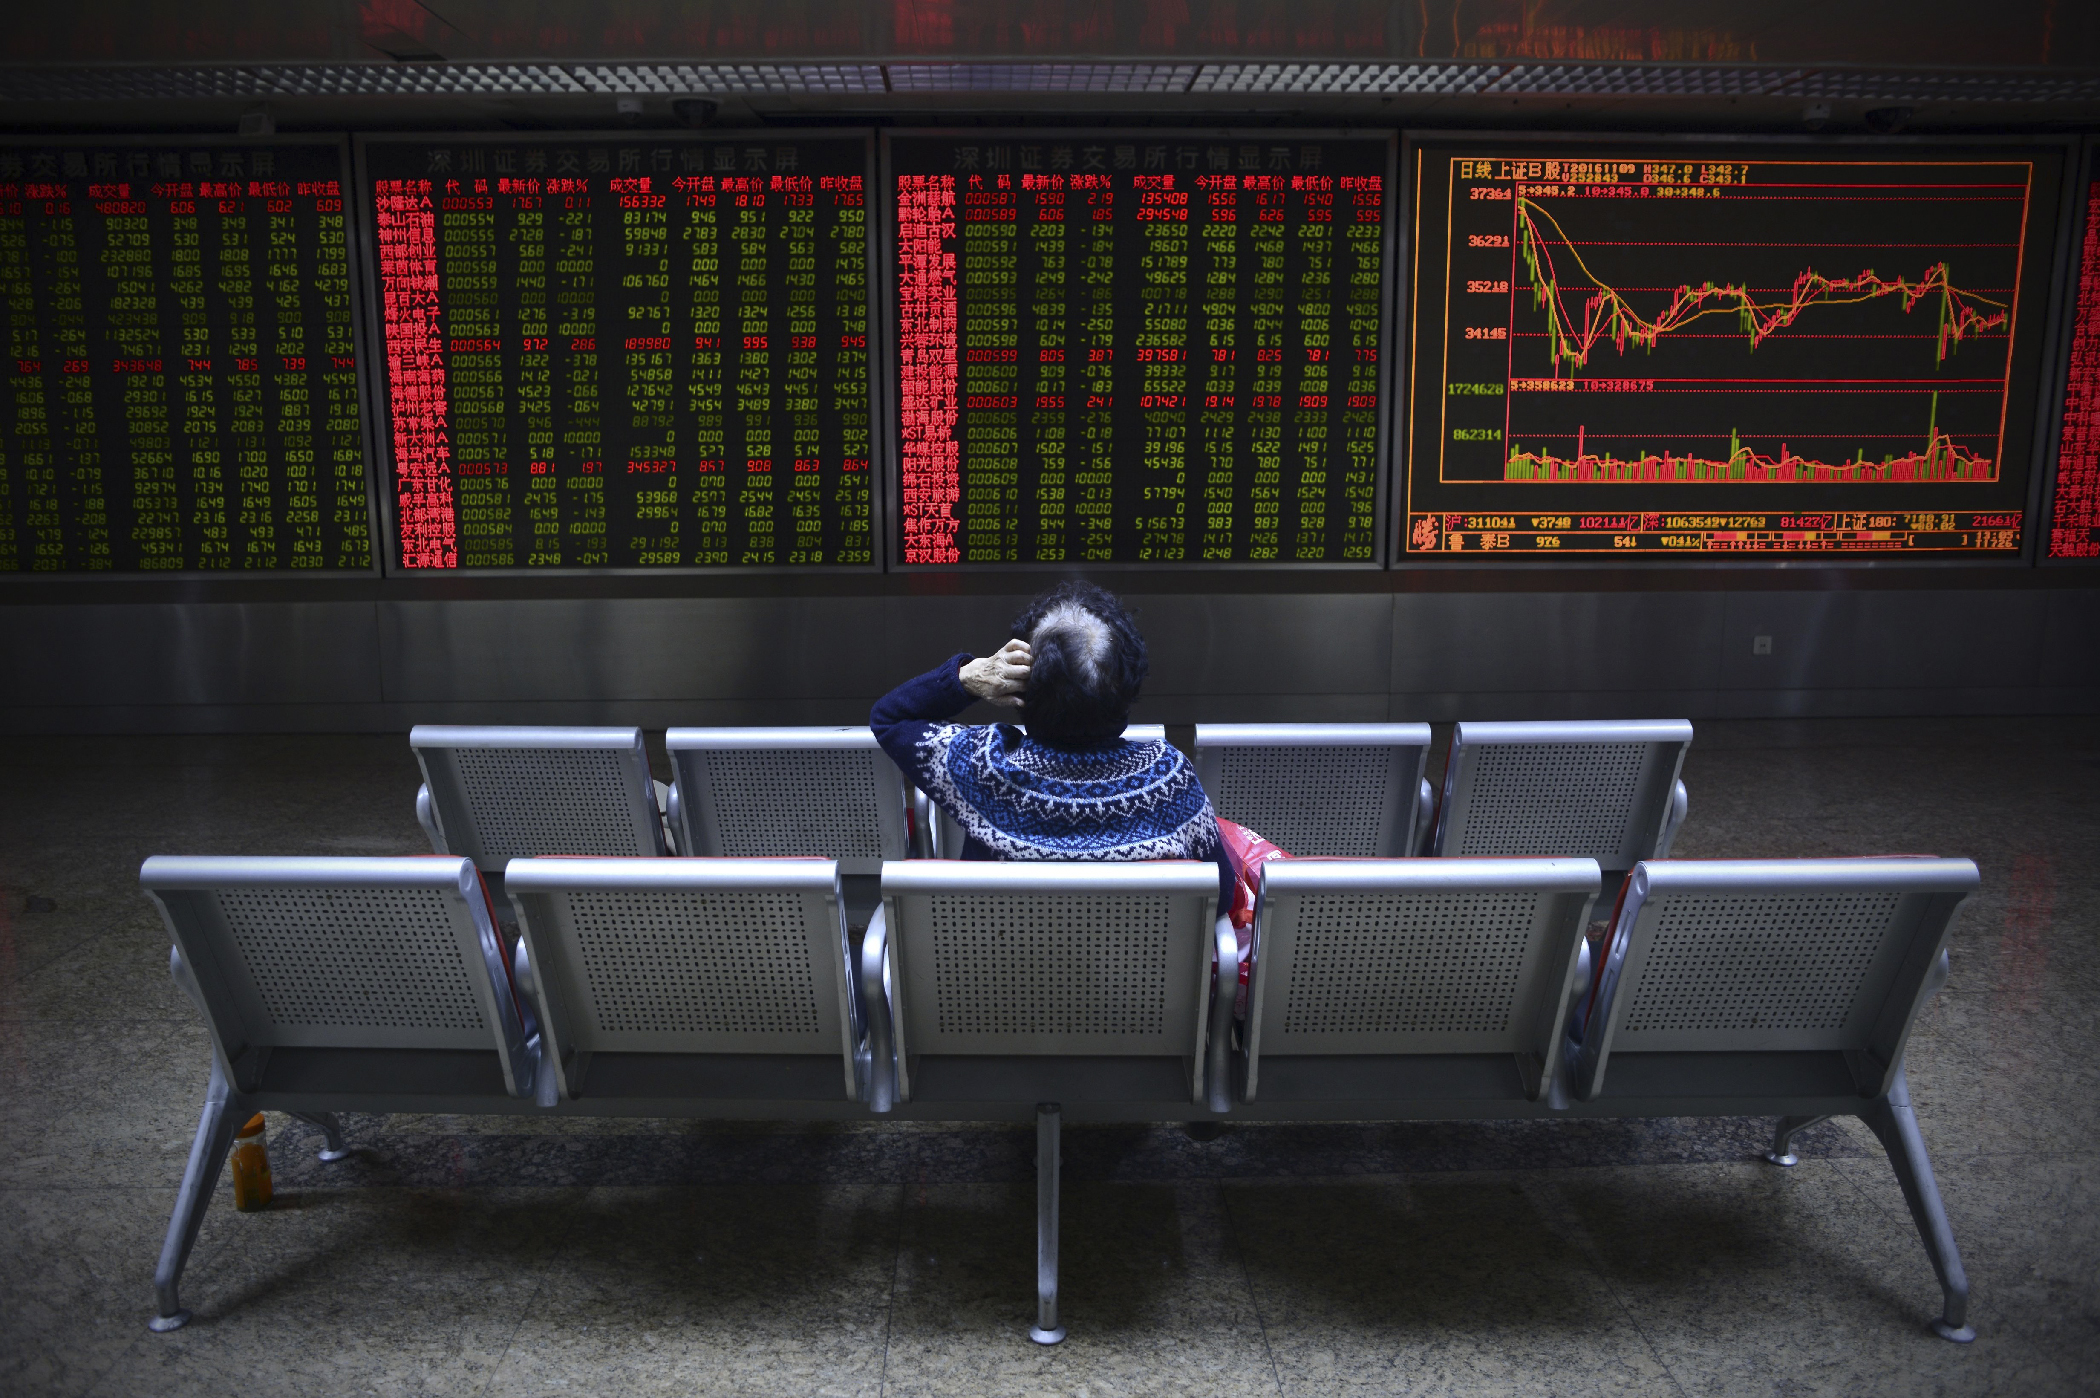 "One of Trump's biggest campaign promises has been to crack down on the Chinese government, who Trump says weakens the value of China's renminbi, giving it an unfair advantage in world trade. The Chinese currency <a href=""http://www.scmp.com/business/markets/article/2044314/yuan-rallies-us-dollar-dragged-down-fears-trump-victory"" target=""_blank"">rallied</a> as the U.S. dollar's value fell following Trump's win."